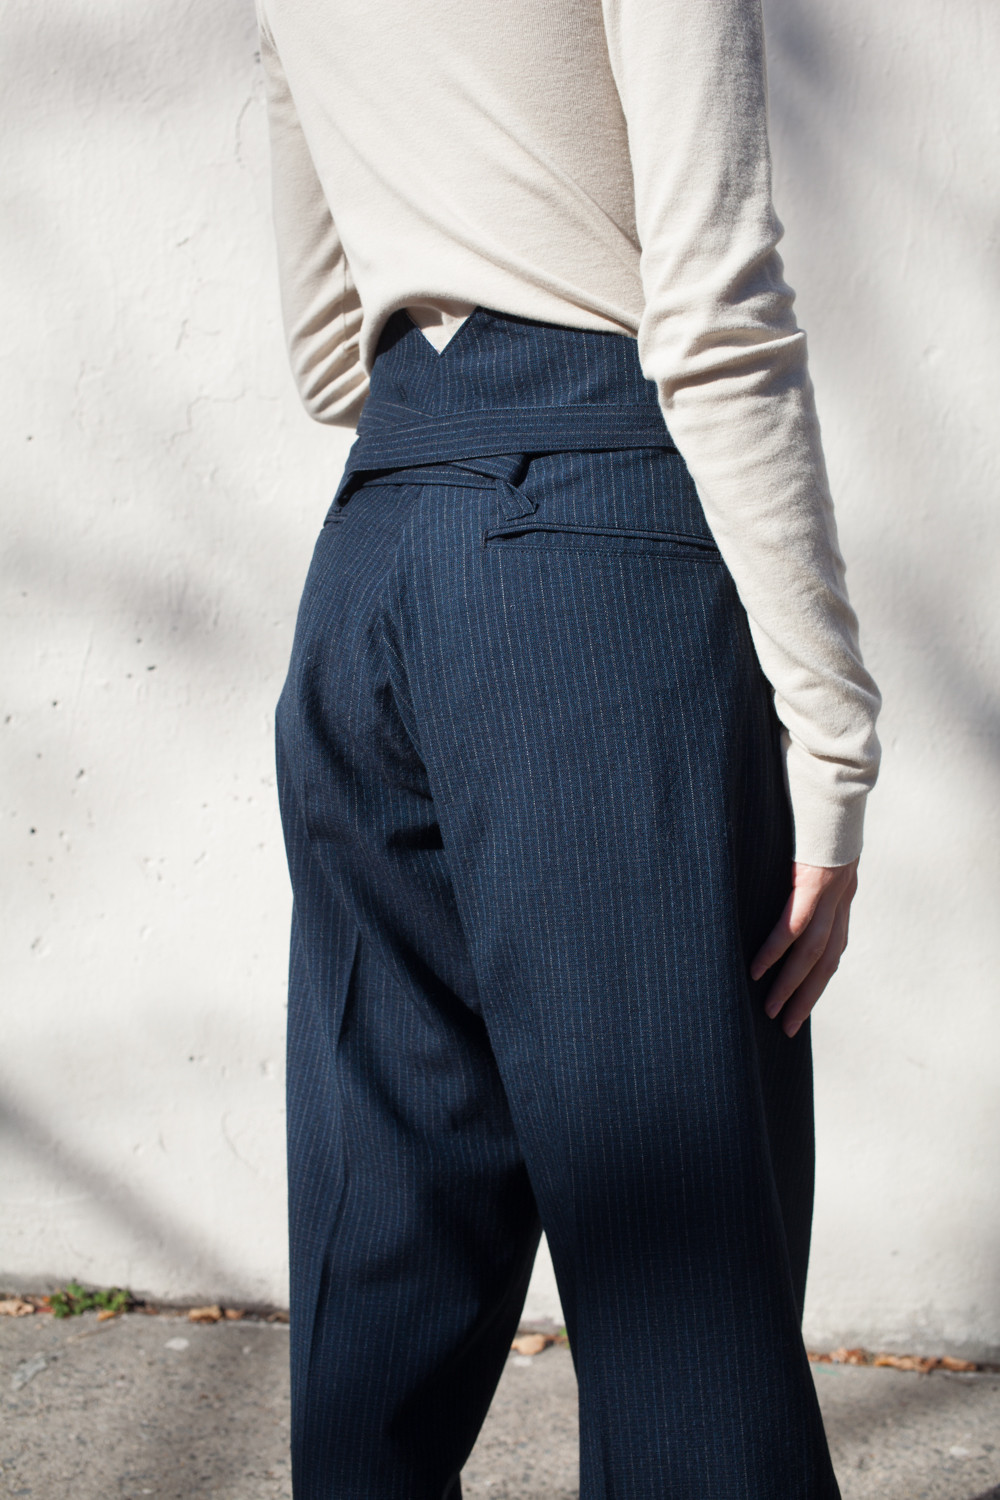 Visvim Hakama Pants In Navy Wool Garmentory